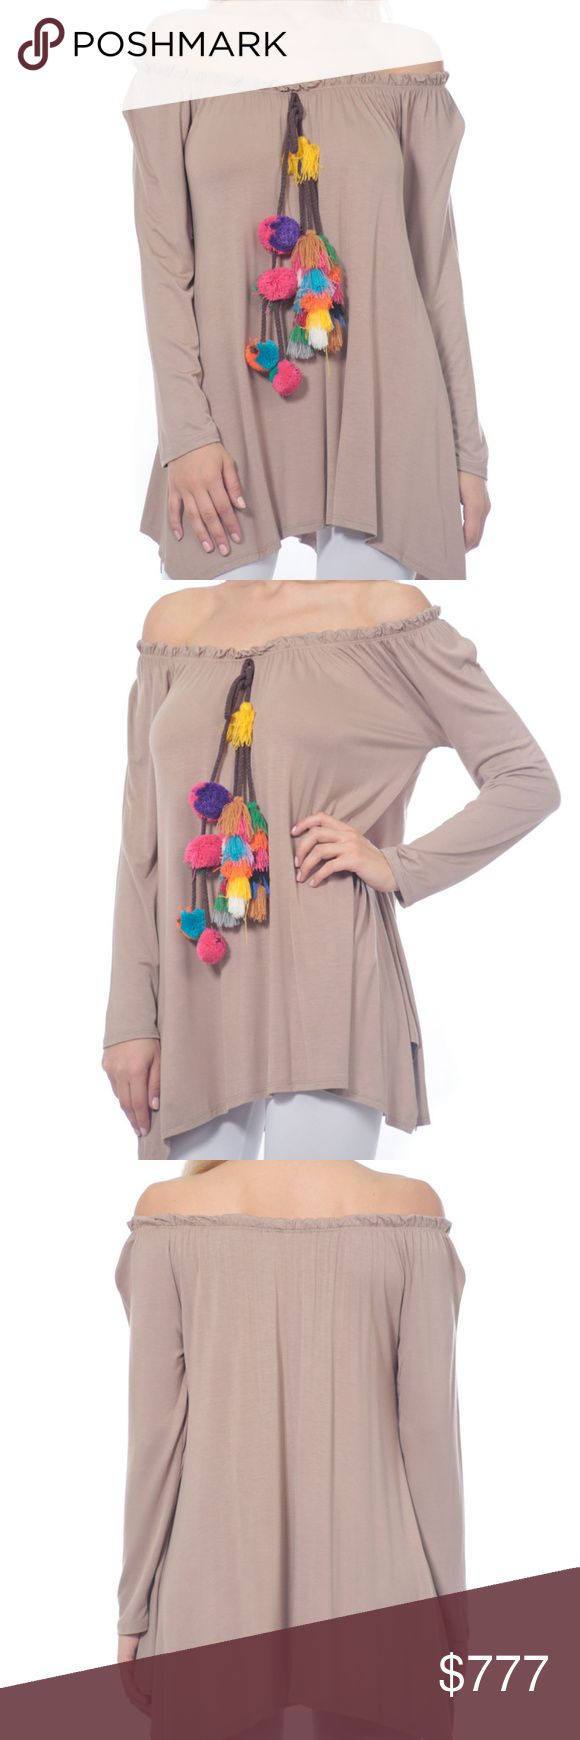 PLAYFUL and fun tunic top! Brand new no tags  Boutique item  Price is firm  Playful taupe tunic top with fun tassel/pom pom detail, sassy and popular off shoulder style. Comfortable and easy to slip on with leggins anf be ready for the day!   Material 95% RAYON 5% SPANDEX Sassy Boutique Tops Tunics